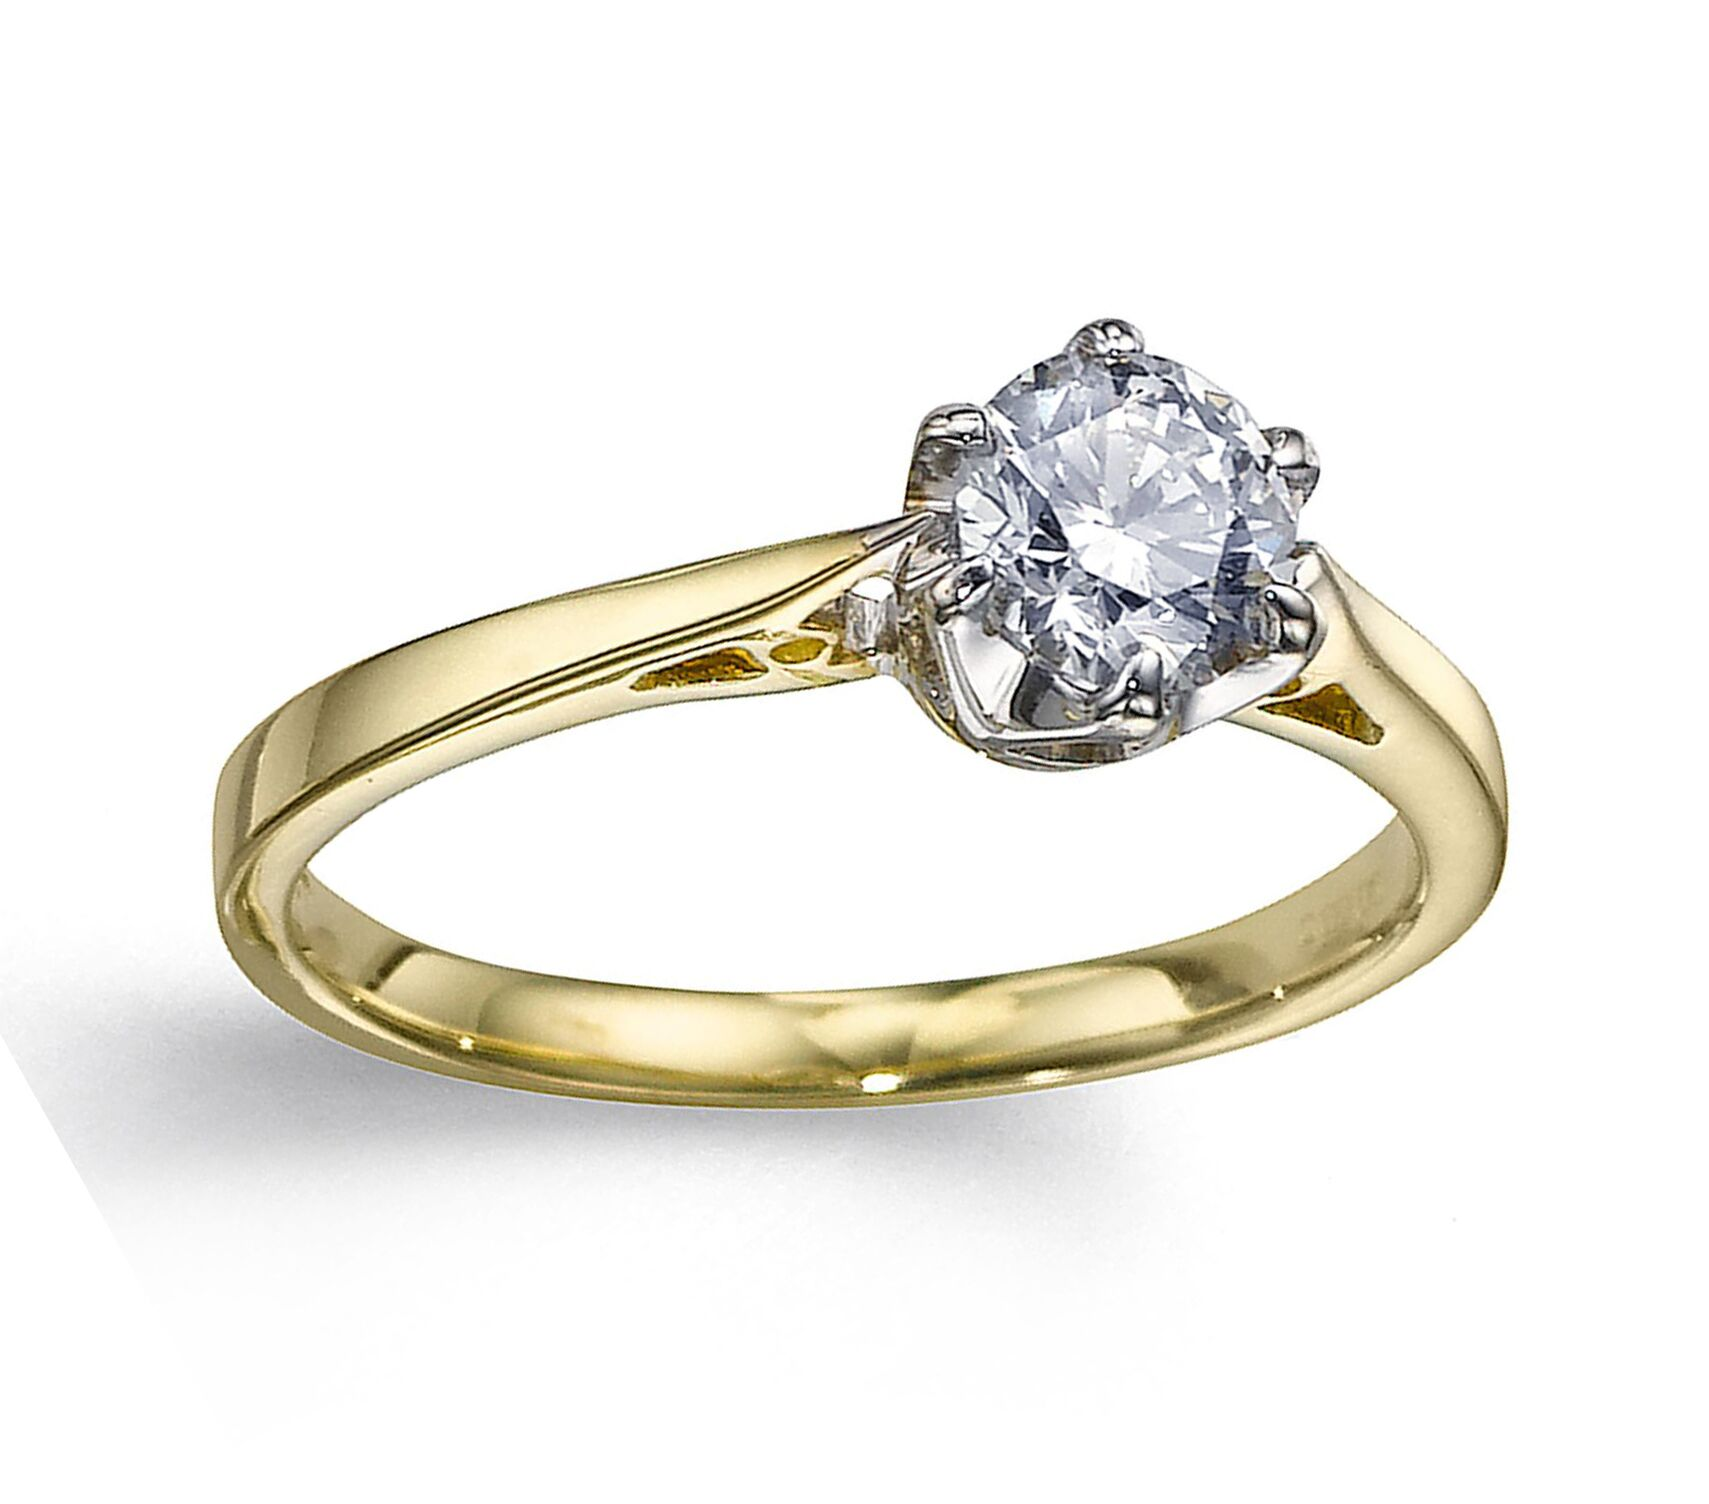 6 Claw Diamond Solitaire Engagement 9ct Yellow Gold Ring RRP £1140 Size O